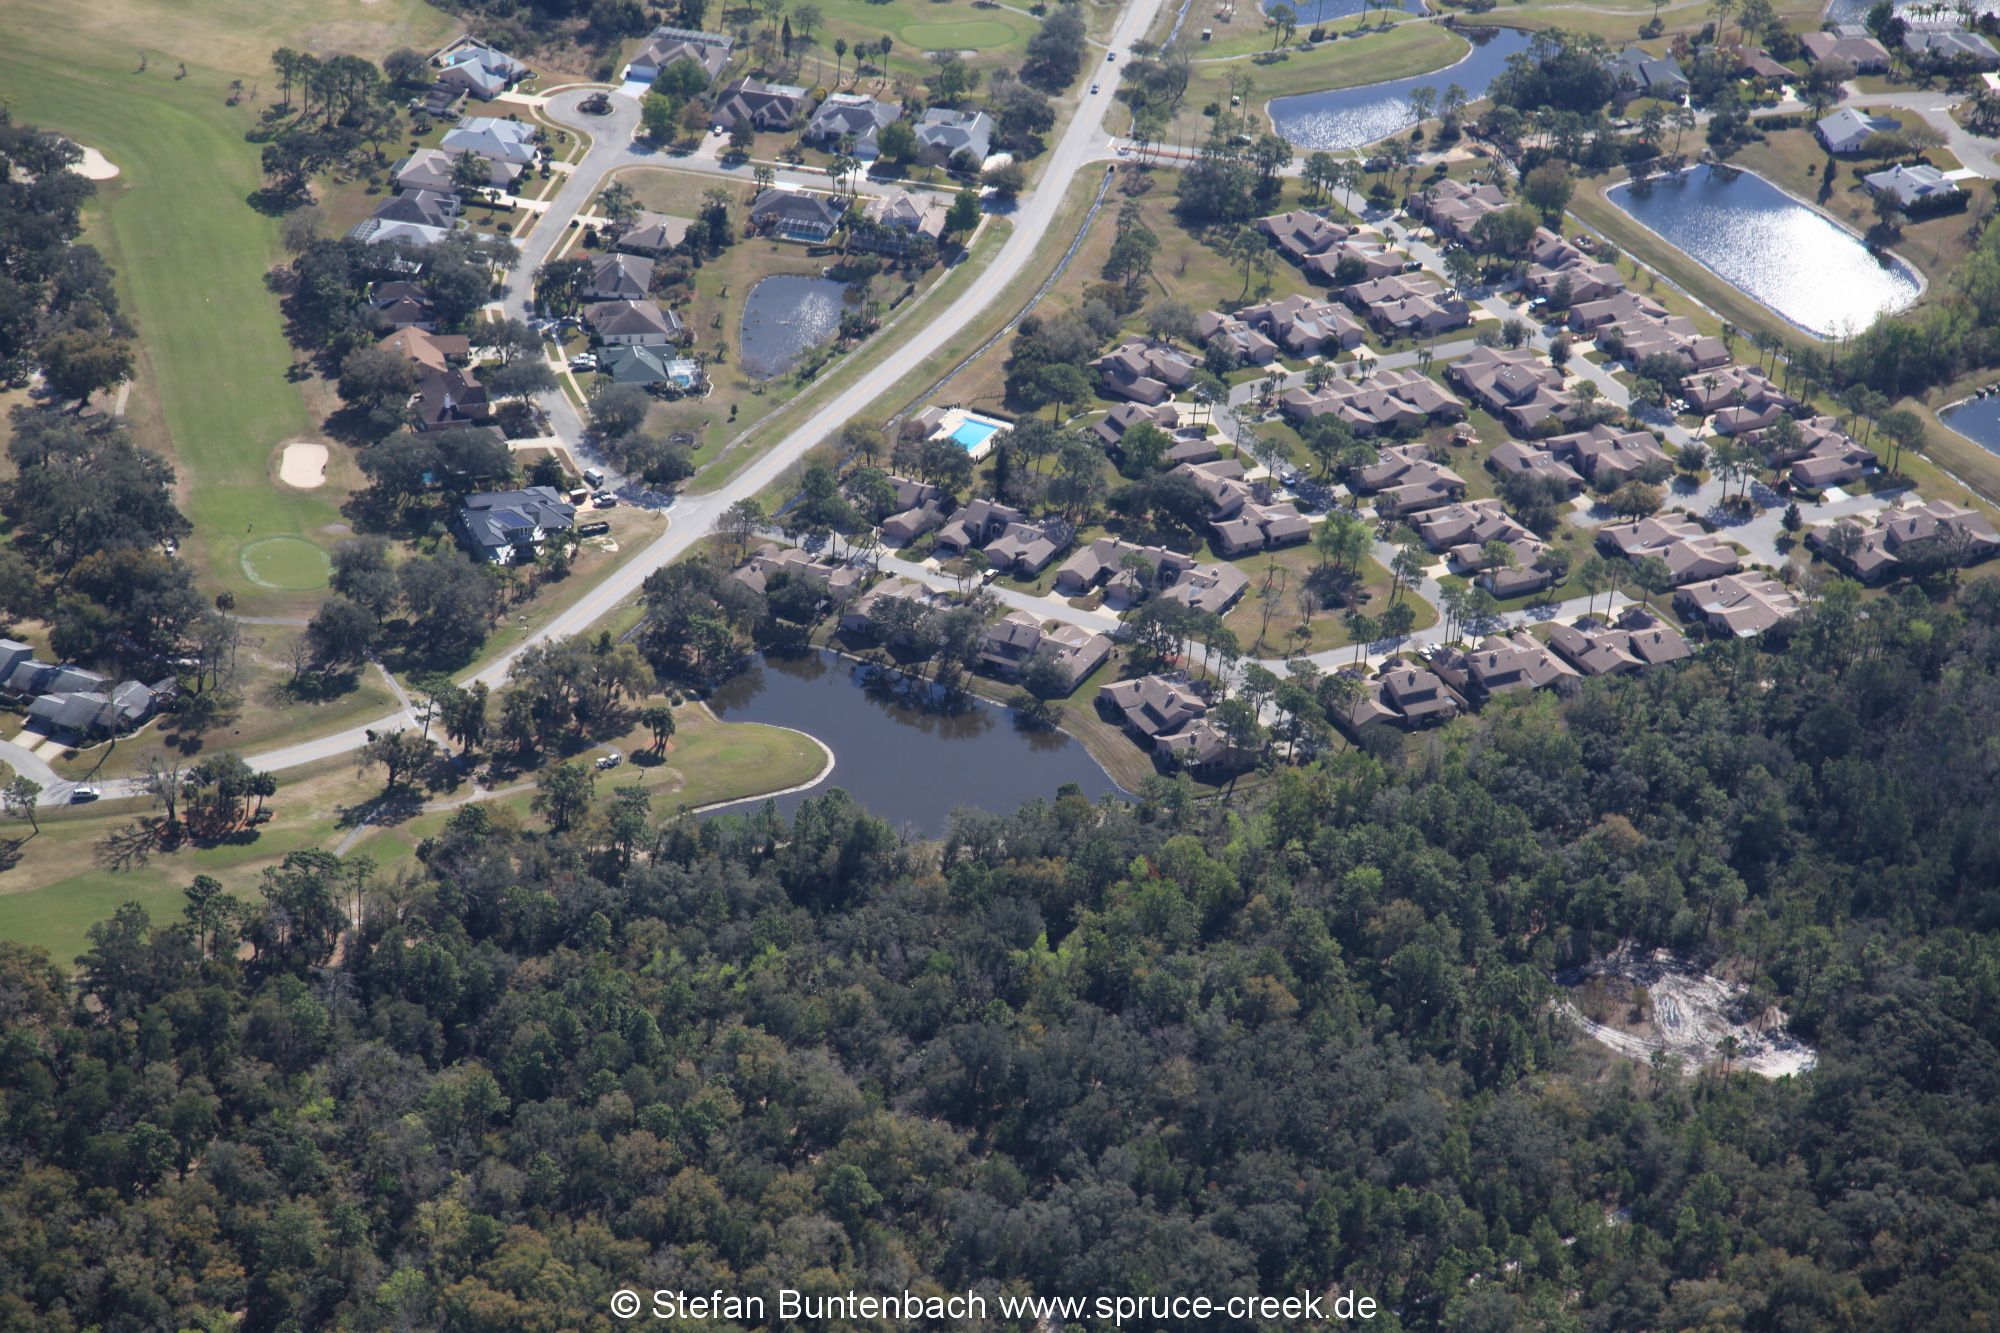 Woodside at Spruce Creek aus der Luft gesehen. Aerial view of Woodside at Spruce Creek.